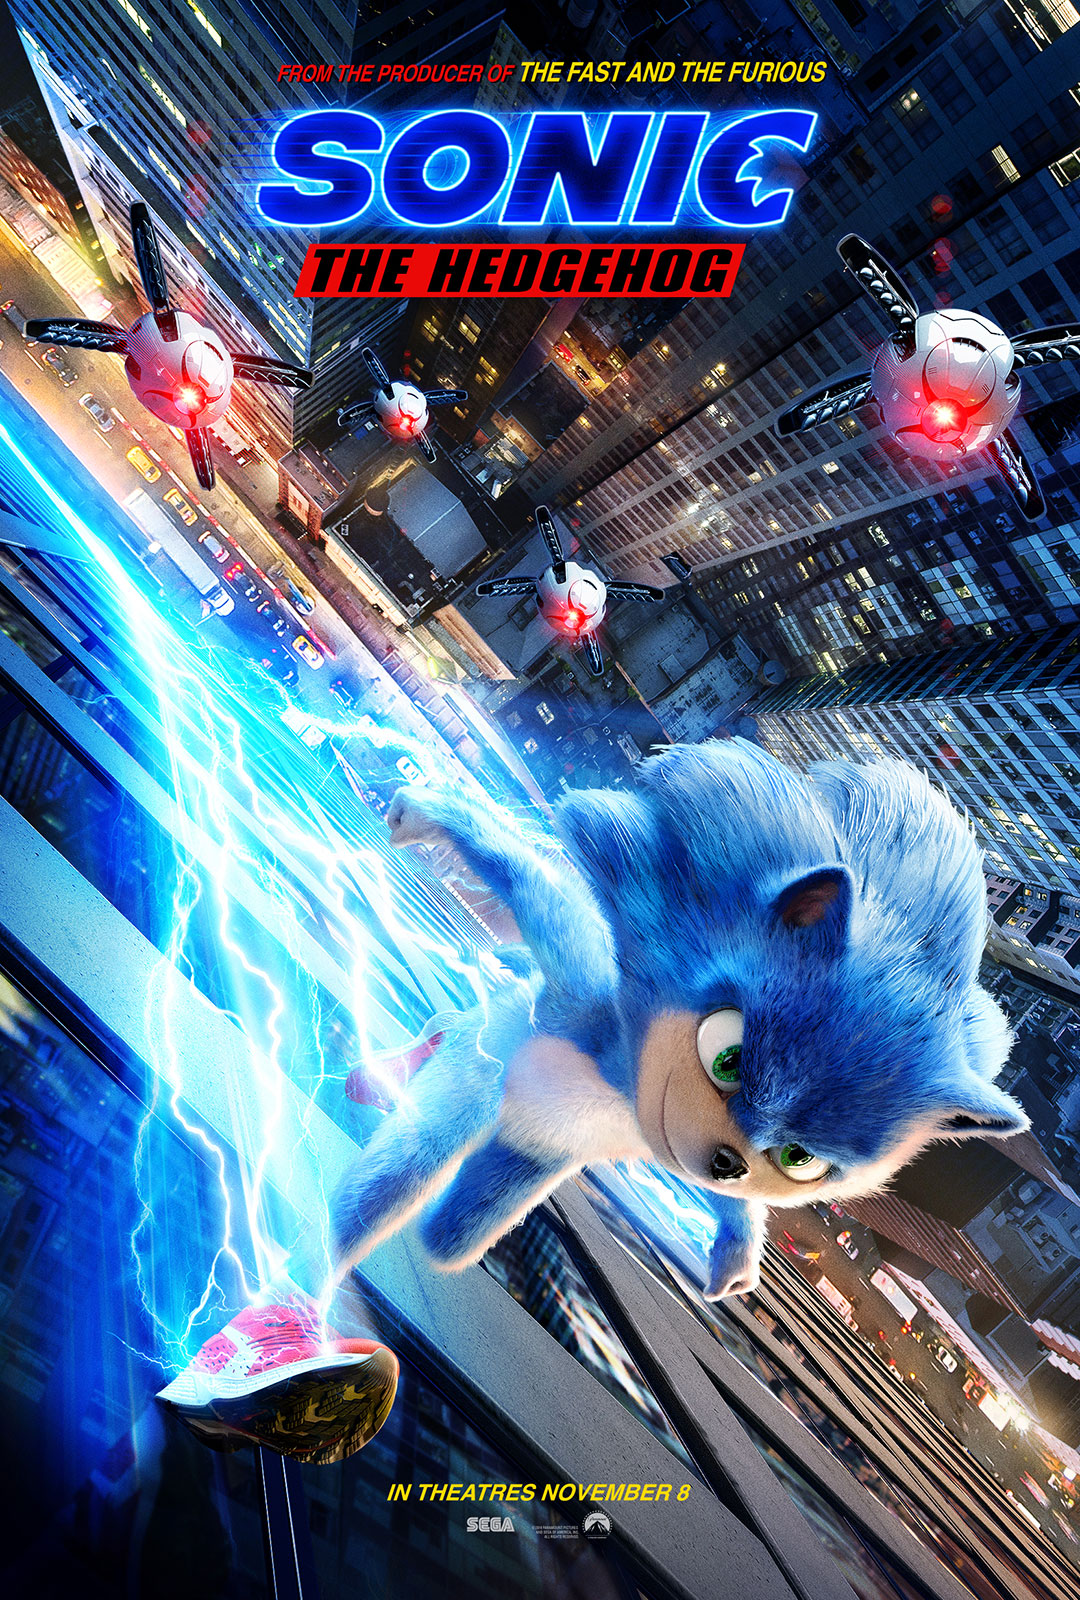 sonic hedgehog movie poster official trailer